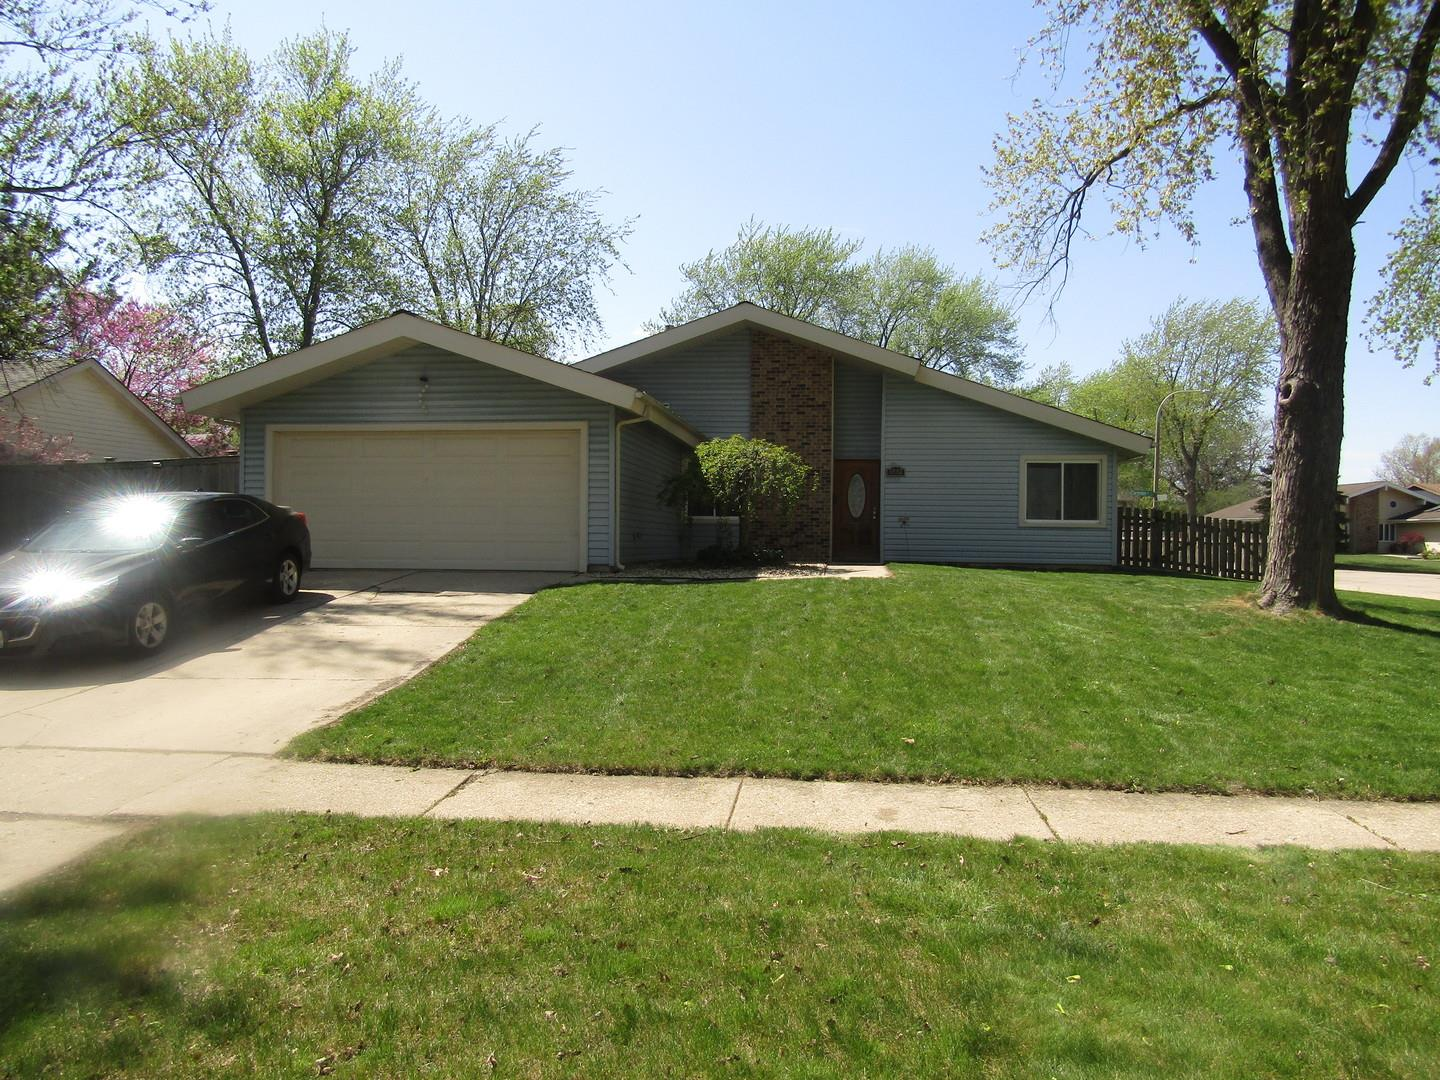 5892 Chatsworth Court, Hanover Park, IL 60133 - #: 11074703